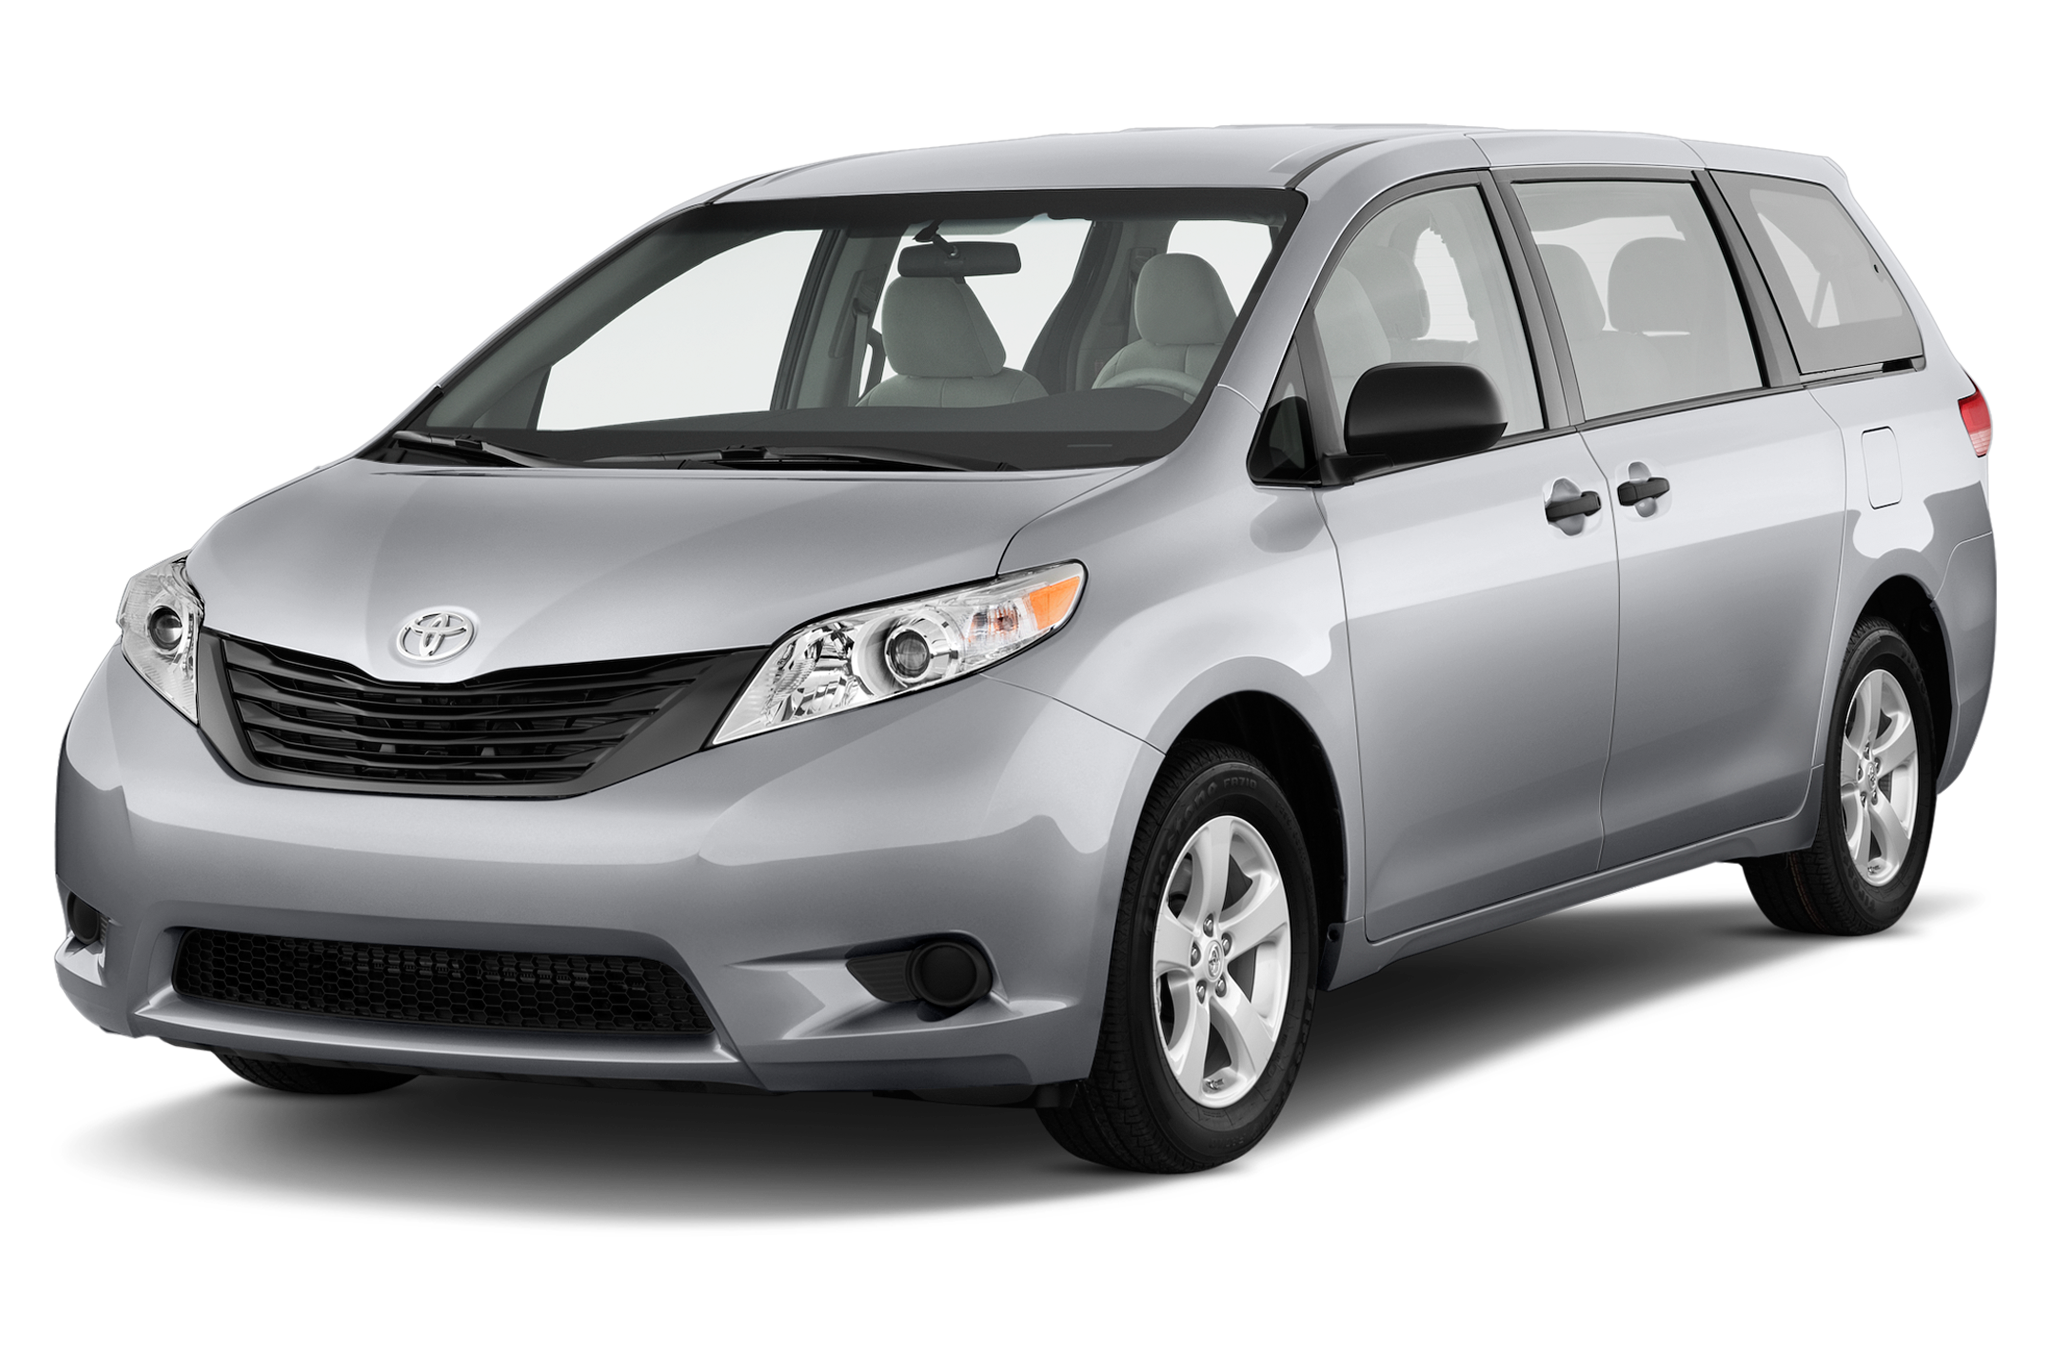 2013 toyota sienna le v6 8 passenger specs and features msn autos. Black Bedroom Furniture Sets. Home Design Ideas